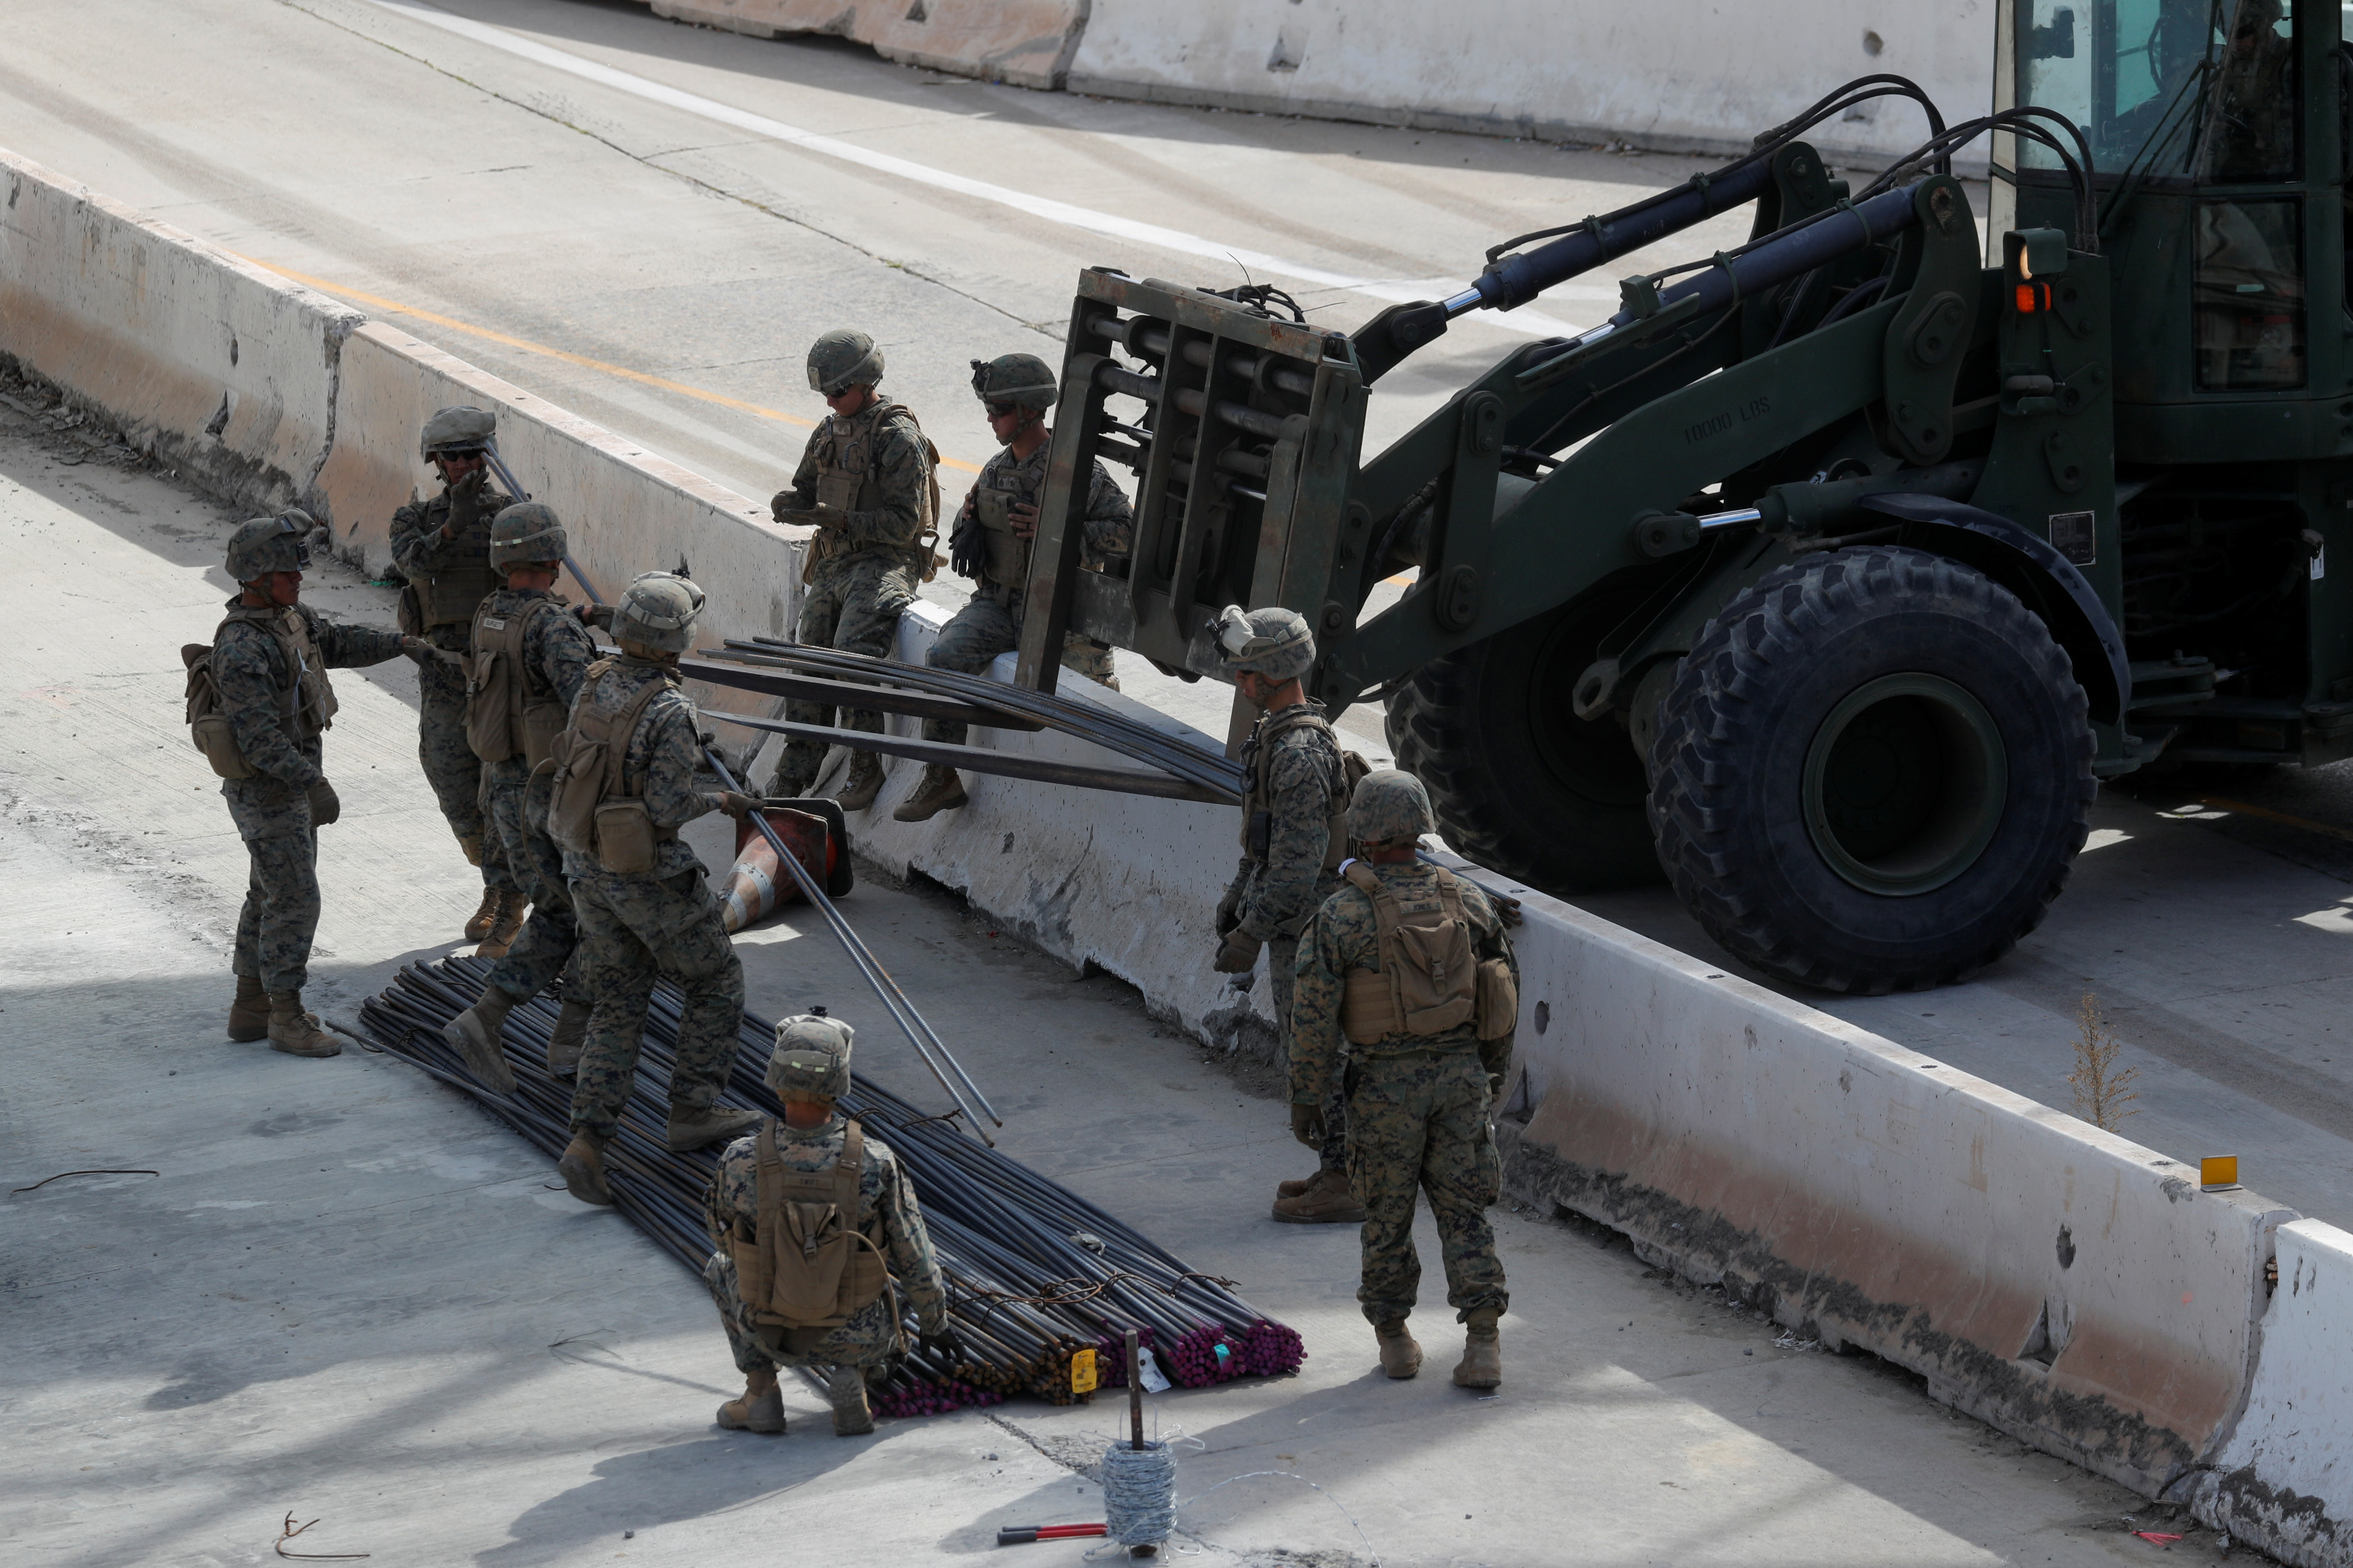 U.S. Marines work to move building materials as they harden the border with Mexico in preparation for the arrival of a caravan of migrants at the San Ysidro border crossing in San Diego, California, U.S., November 13, 2018. REUTERS/Mike Blake